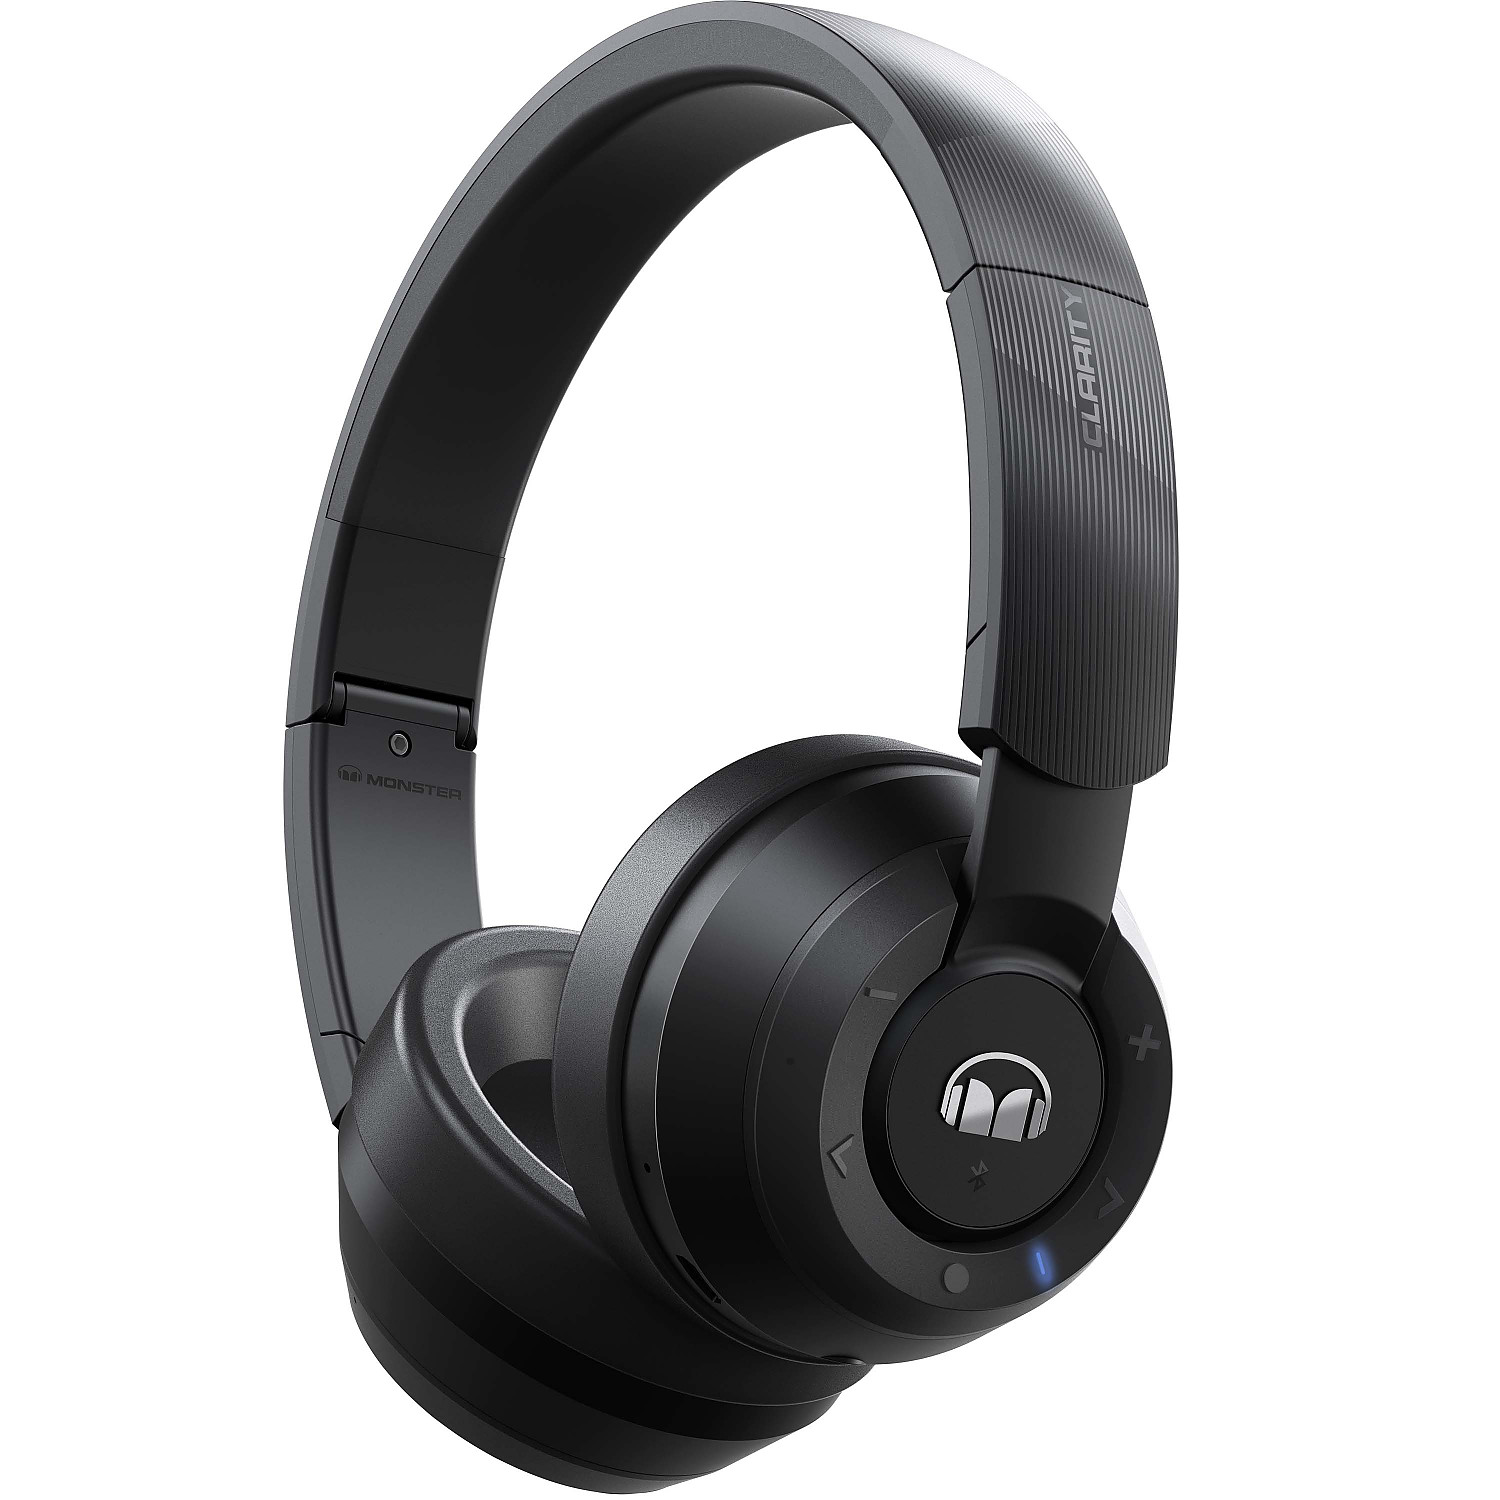 around ear headphone clarity 200 bluetooth monster headphones. Black Bedroom Furniture Sets. Home Design Ideas